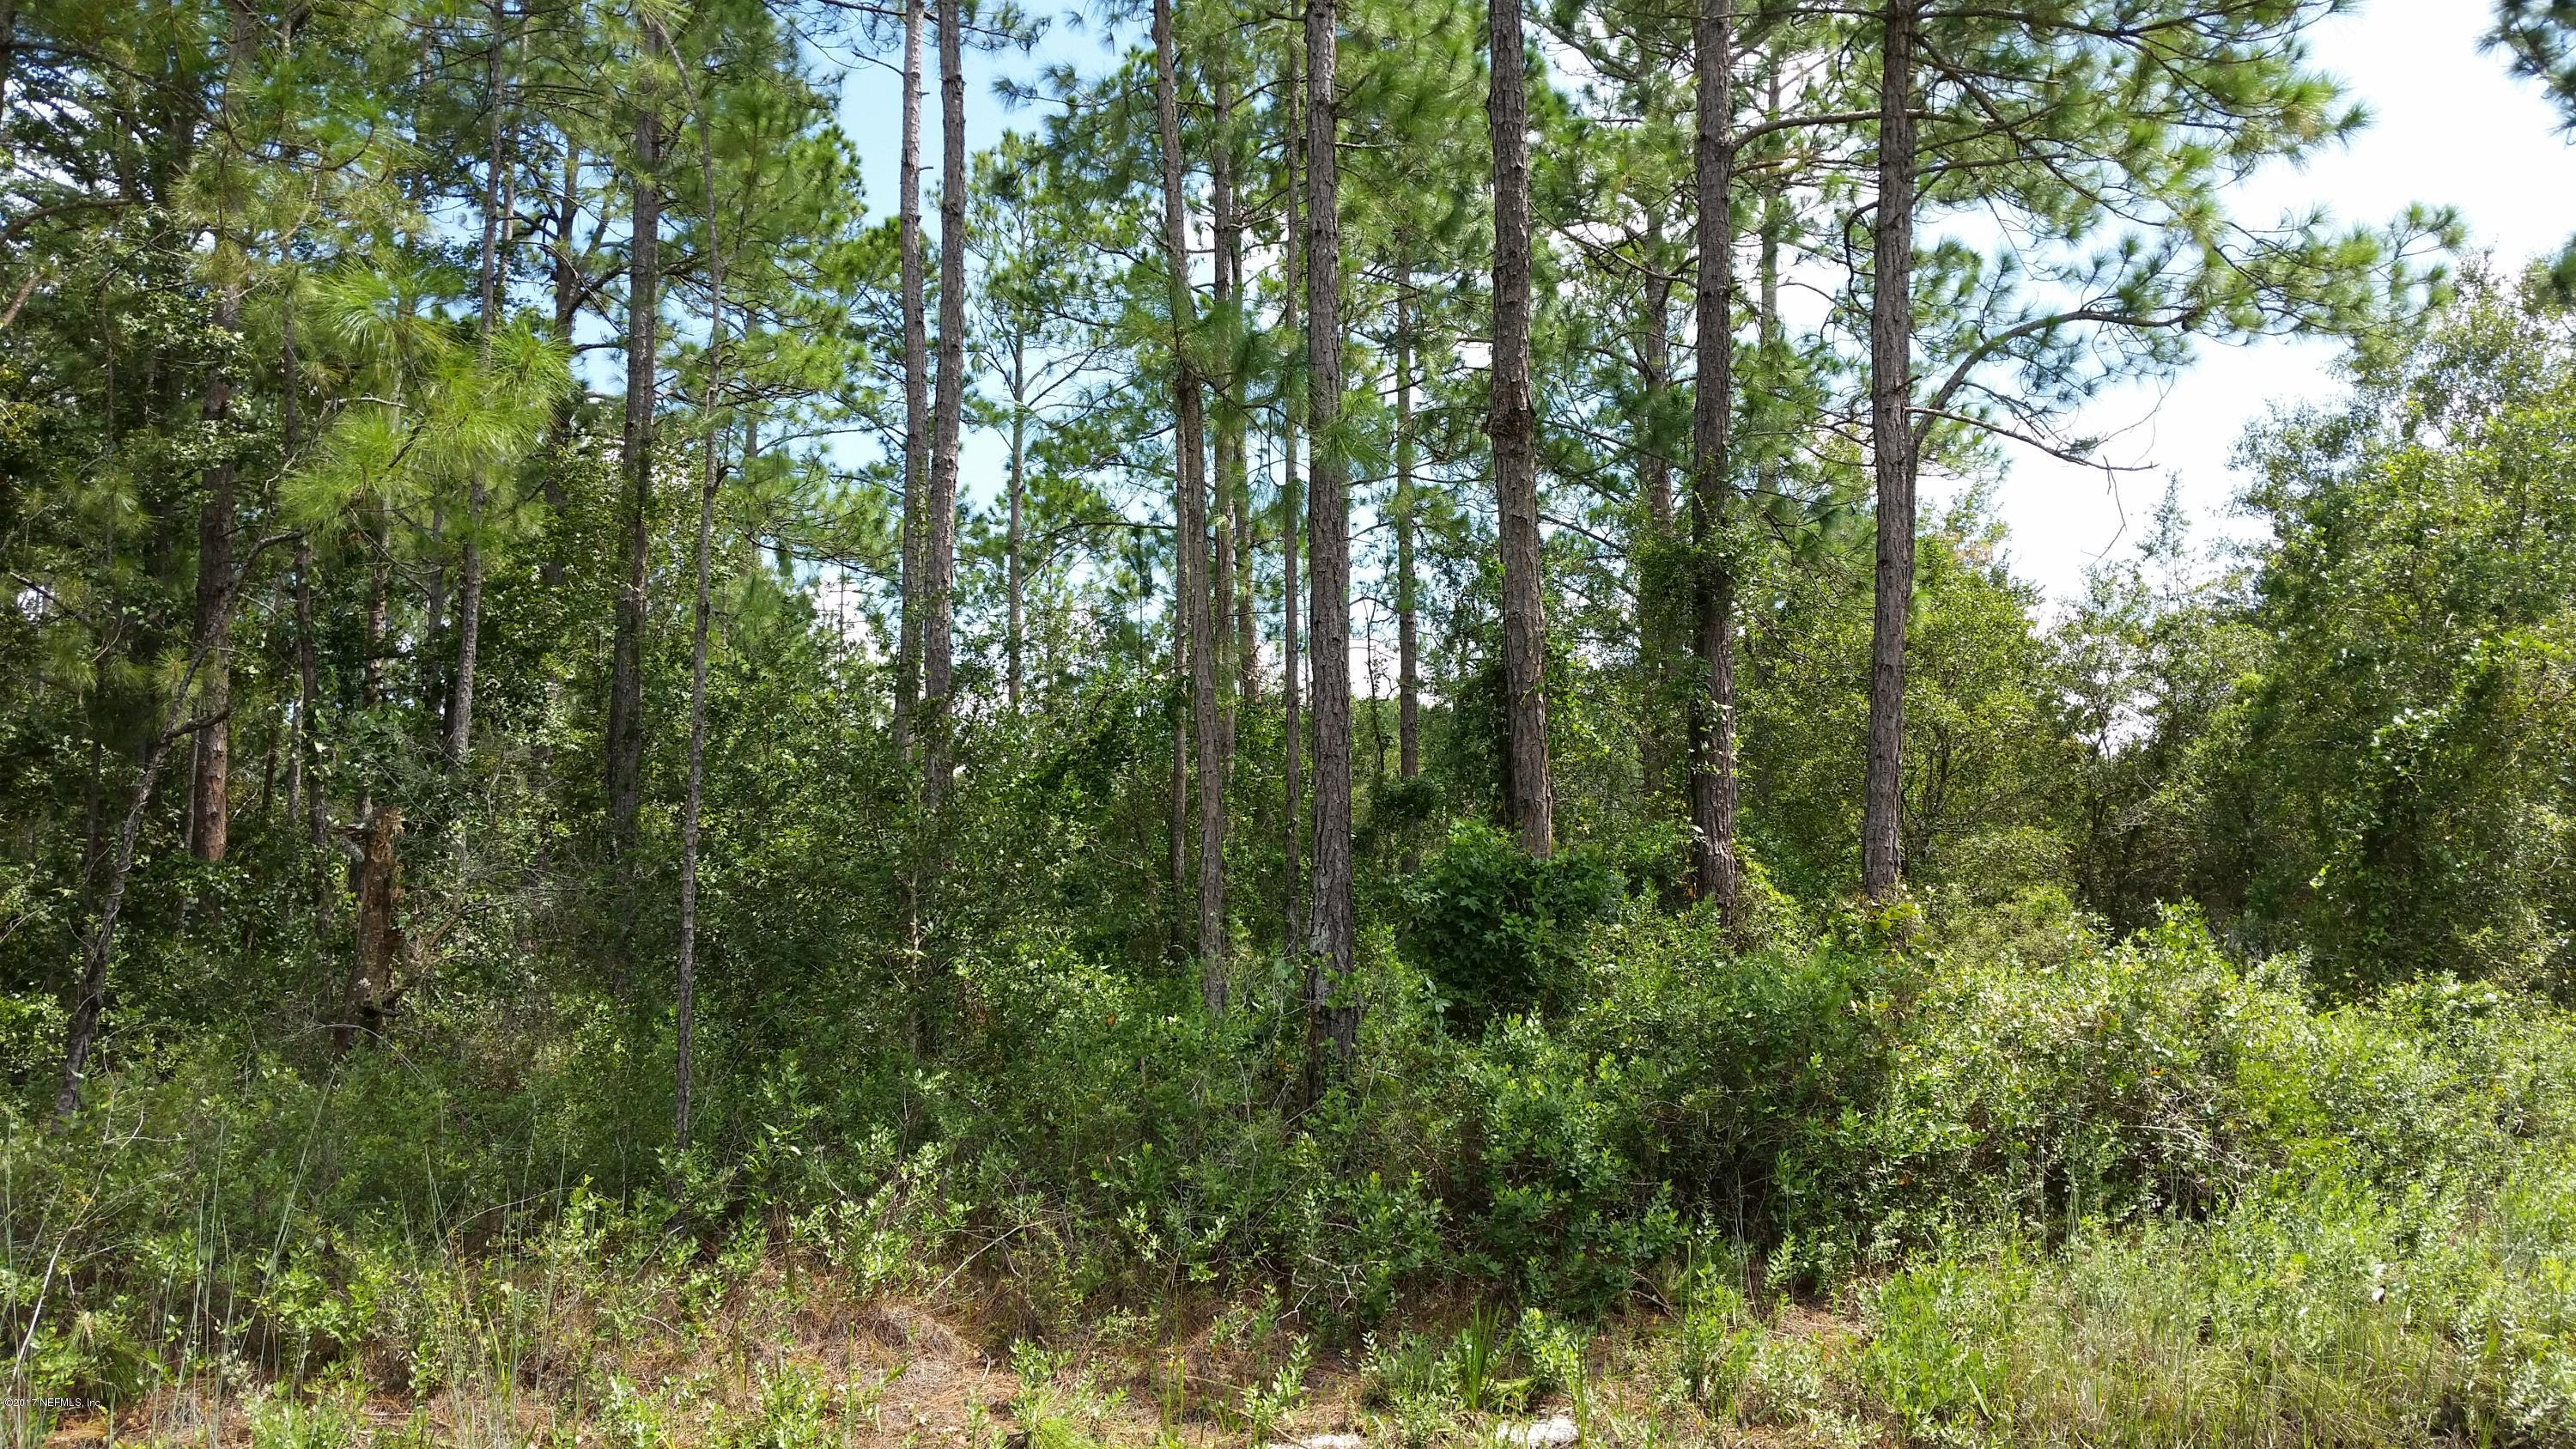 9850 MCMAHON, HASTINGS, FLORIDA 32145, ,Vacant land,For sale,MCMAHON,901210